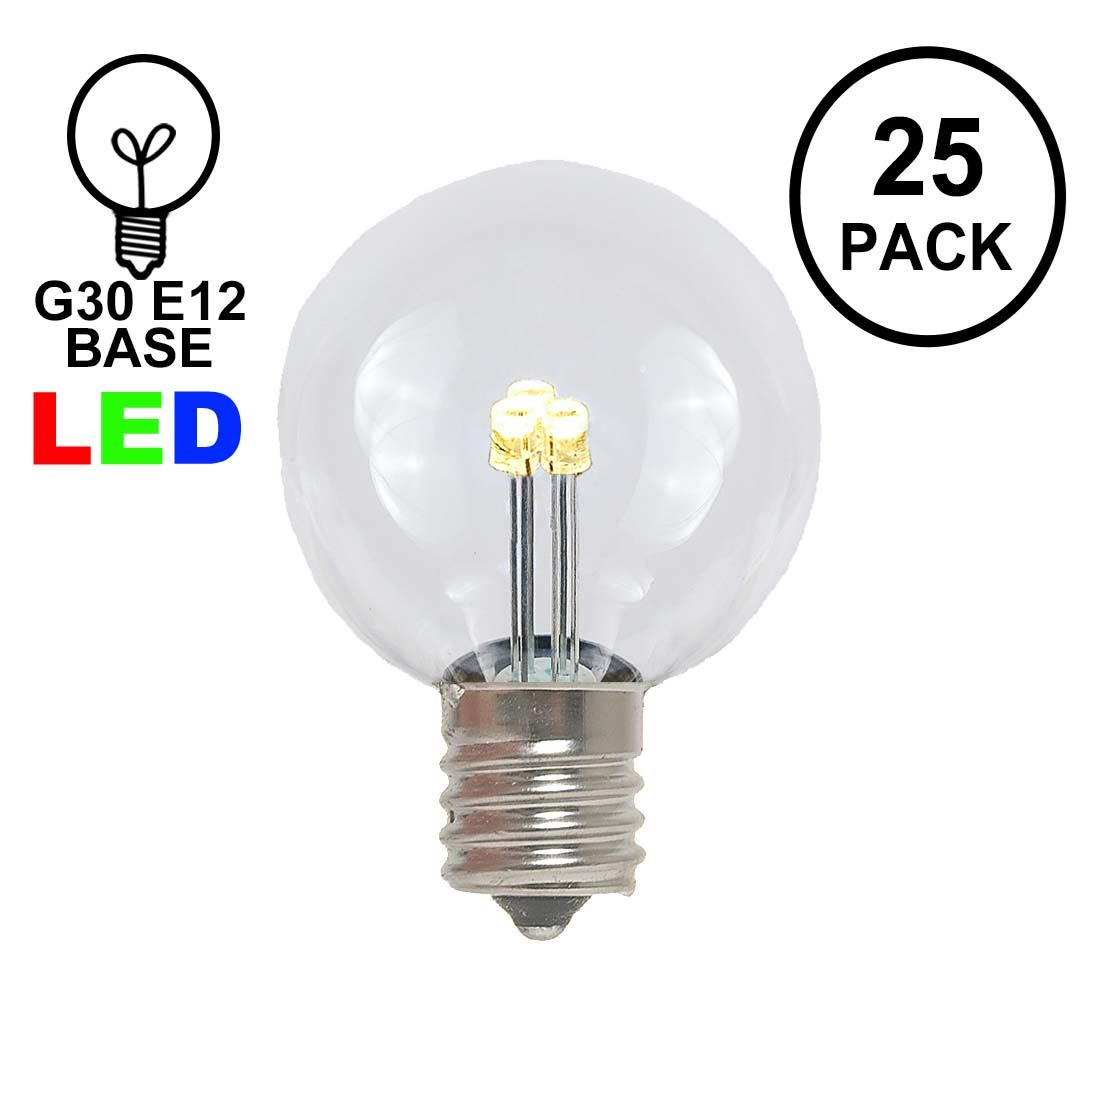 novelty lights 25 pack g30 led outdoor string light patio globe replacement bulbs 3 led s per bulb energy efficient walmart com